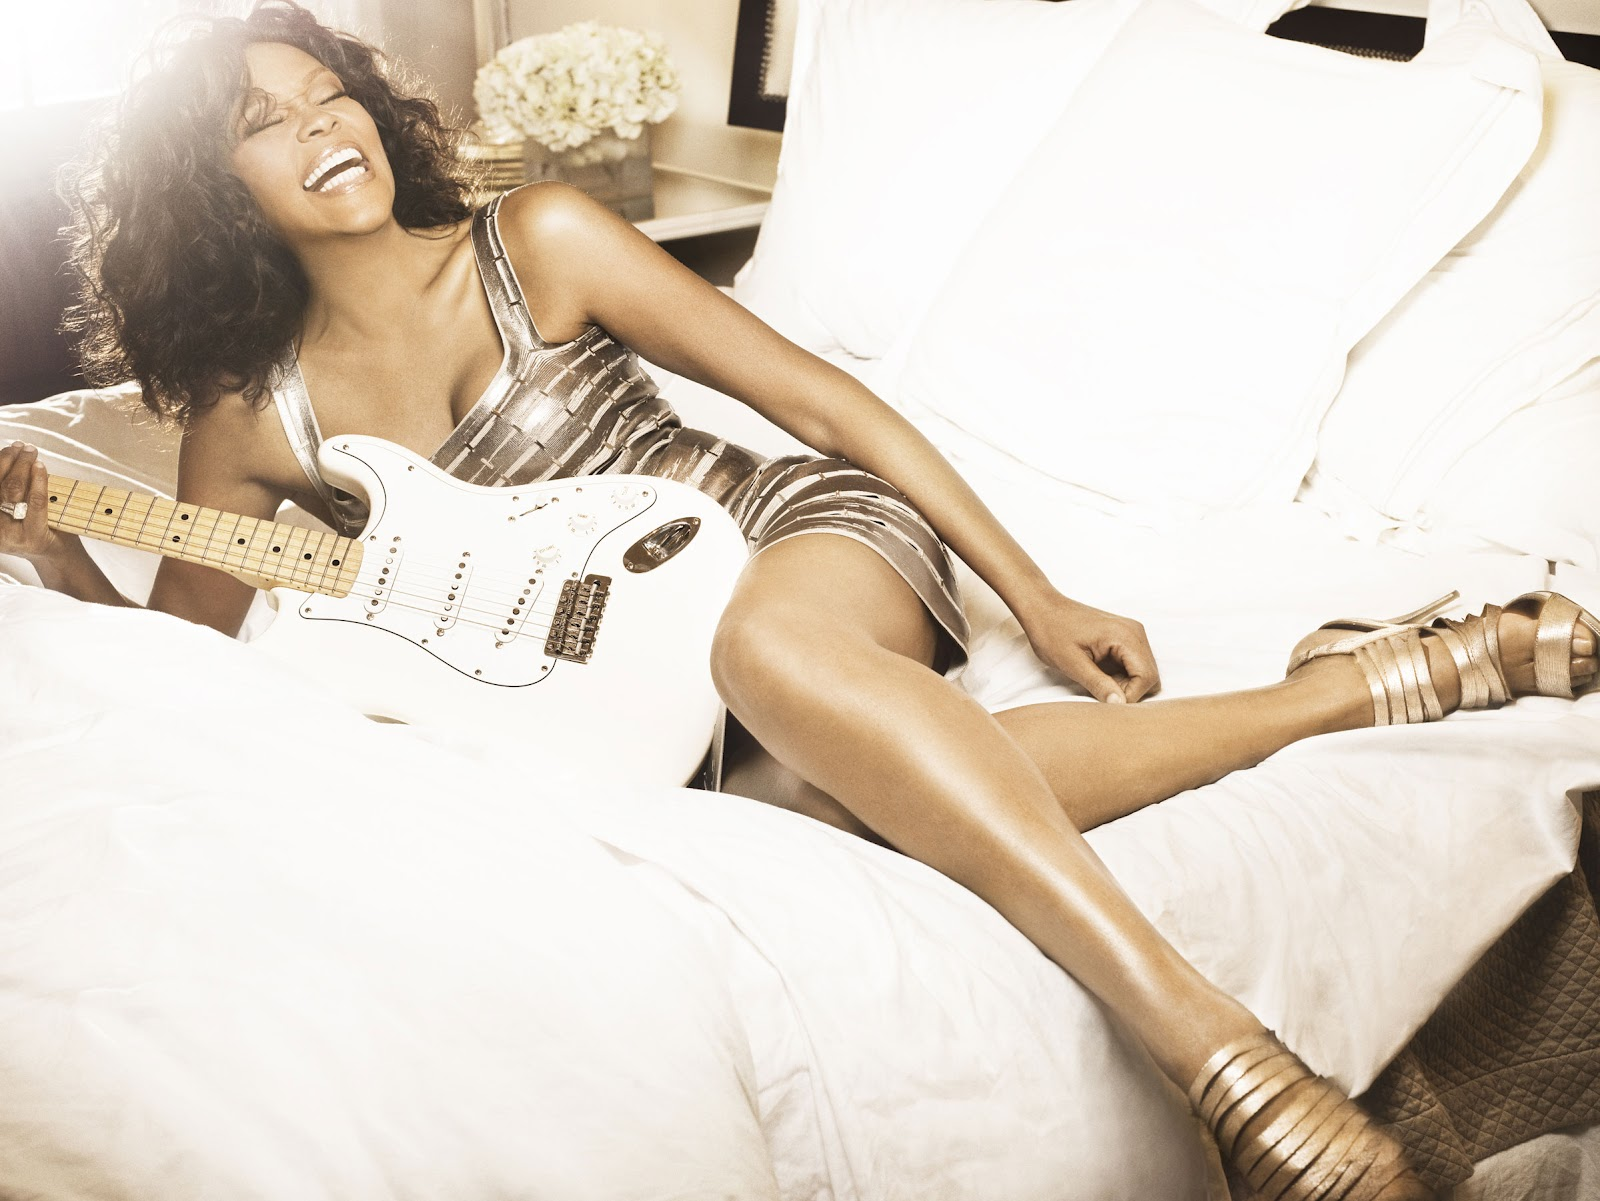 http://1.bp.blogspot.com/-ip4CjbPsUoE/T08ypCartYI/AAAAAAAABUU/rZ6oEsJwhv8/s1600/Whitney_Houston_Hot_guitar1.jpg